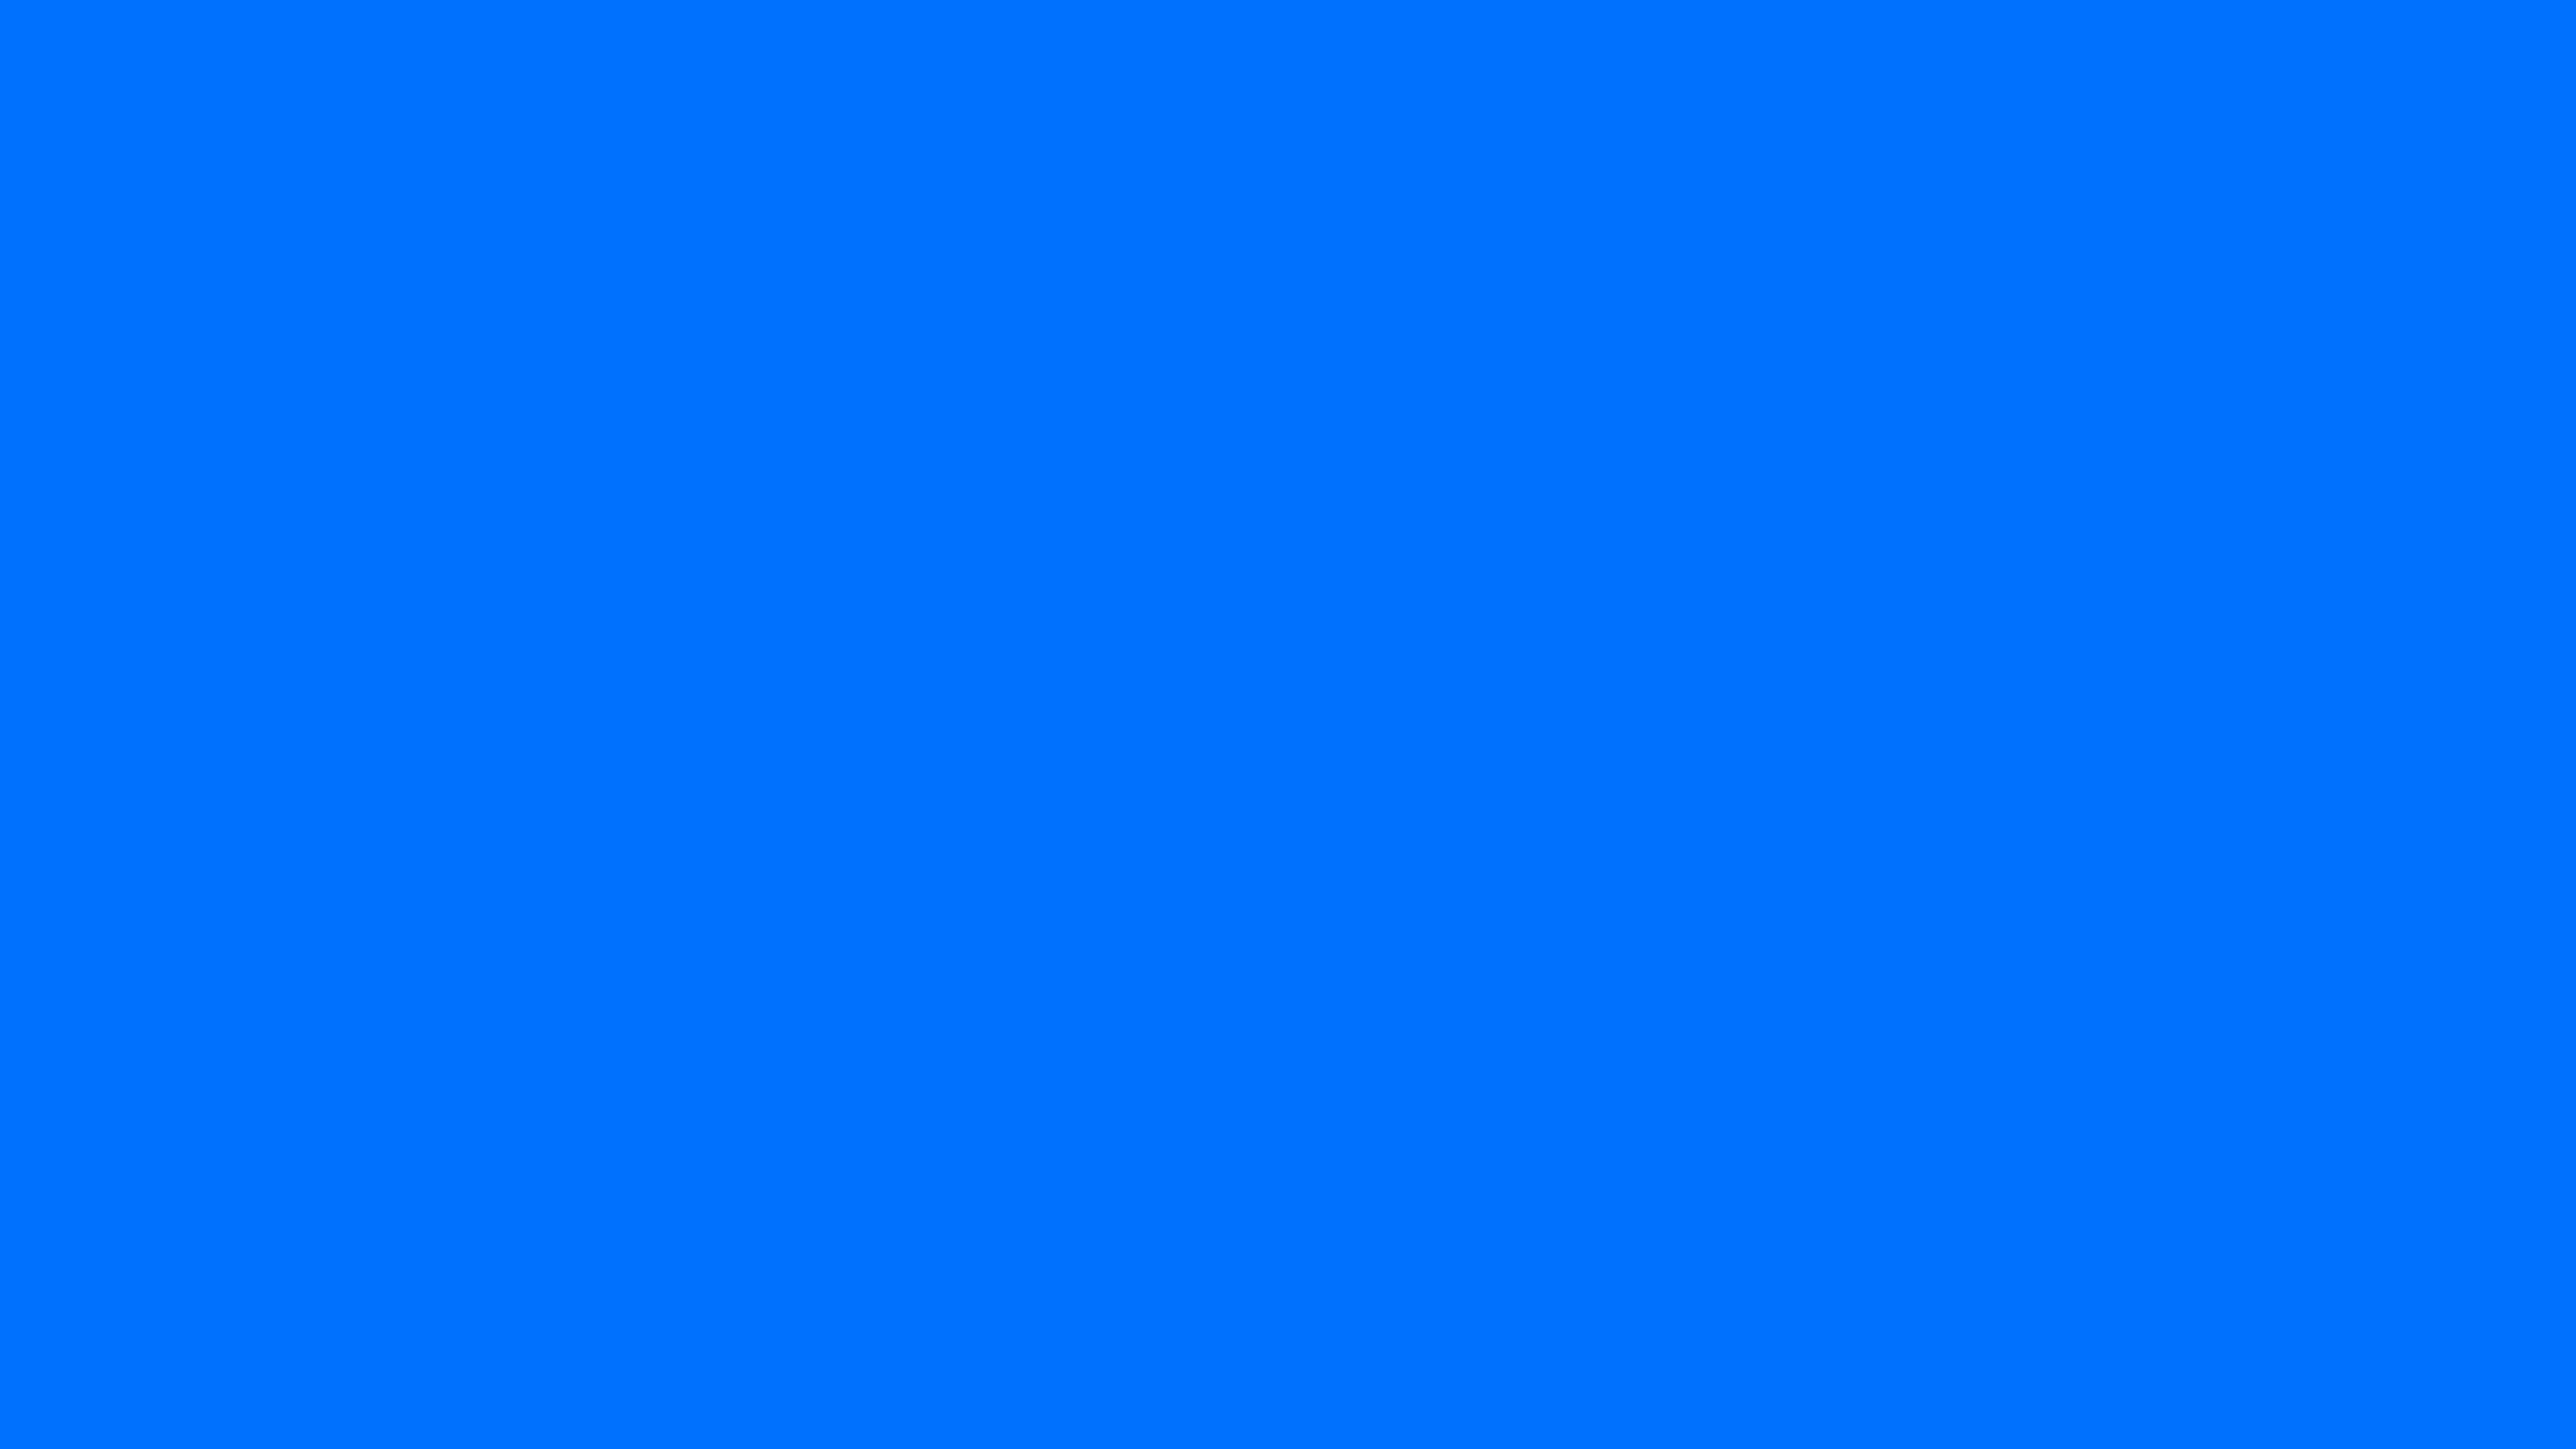 5120x2880 Brandeis Blue Solid Color Background